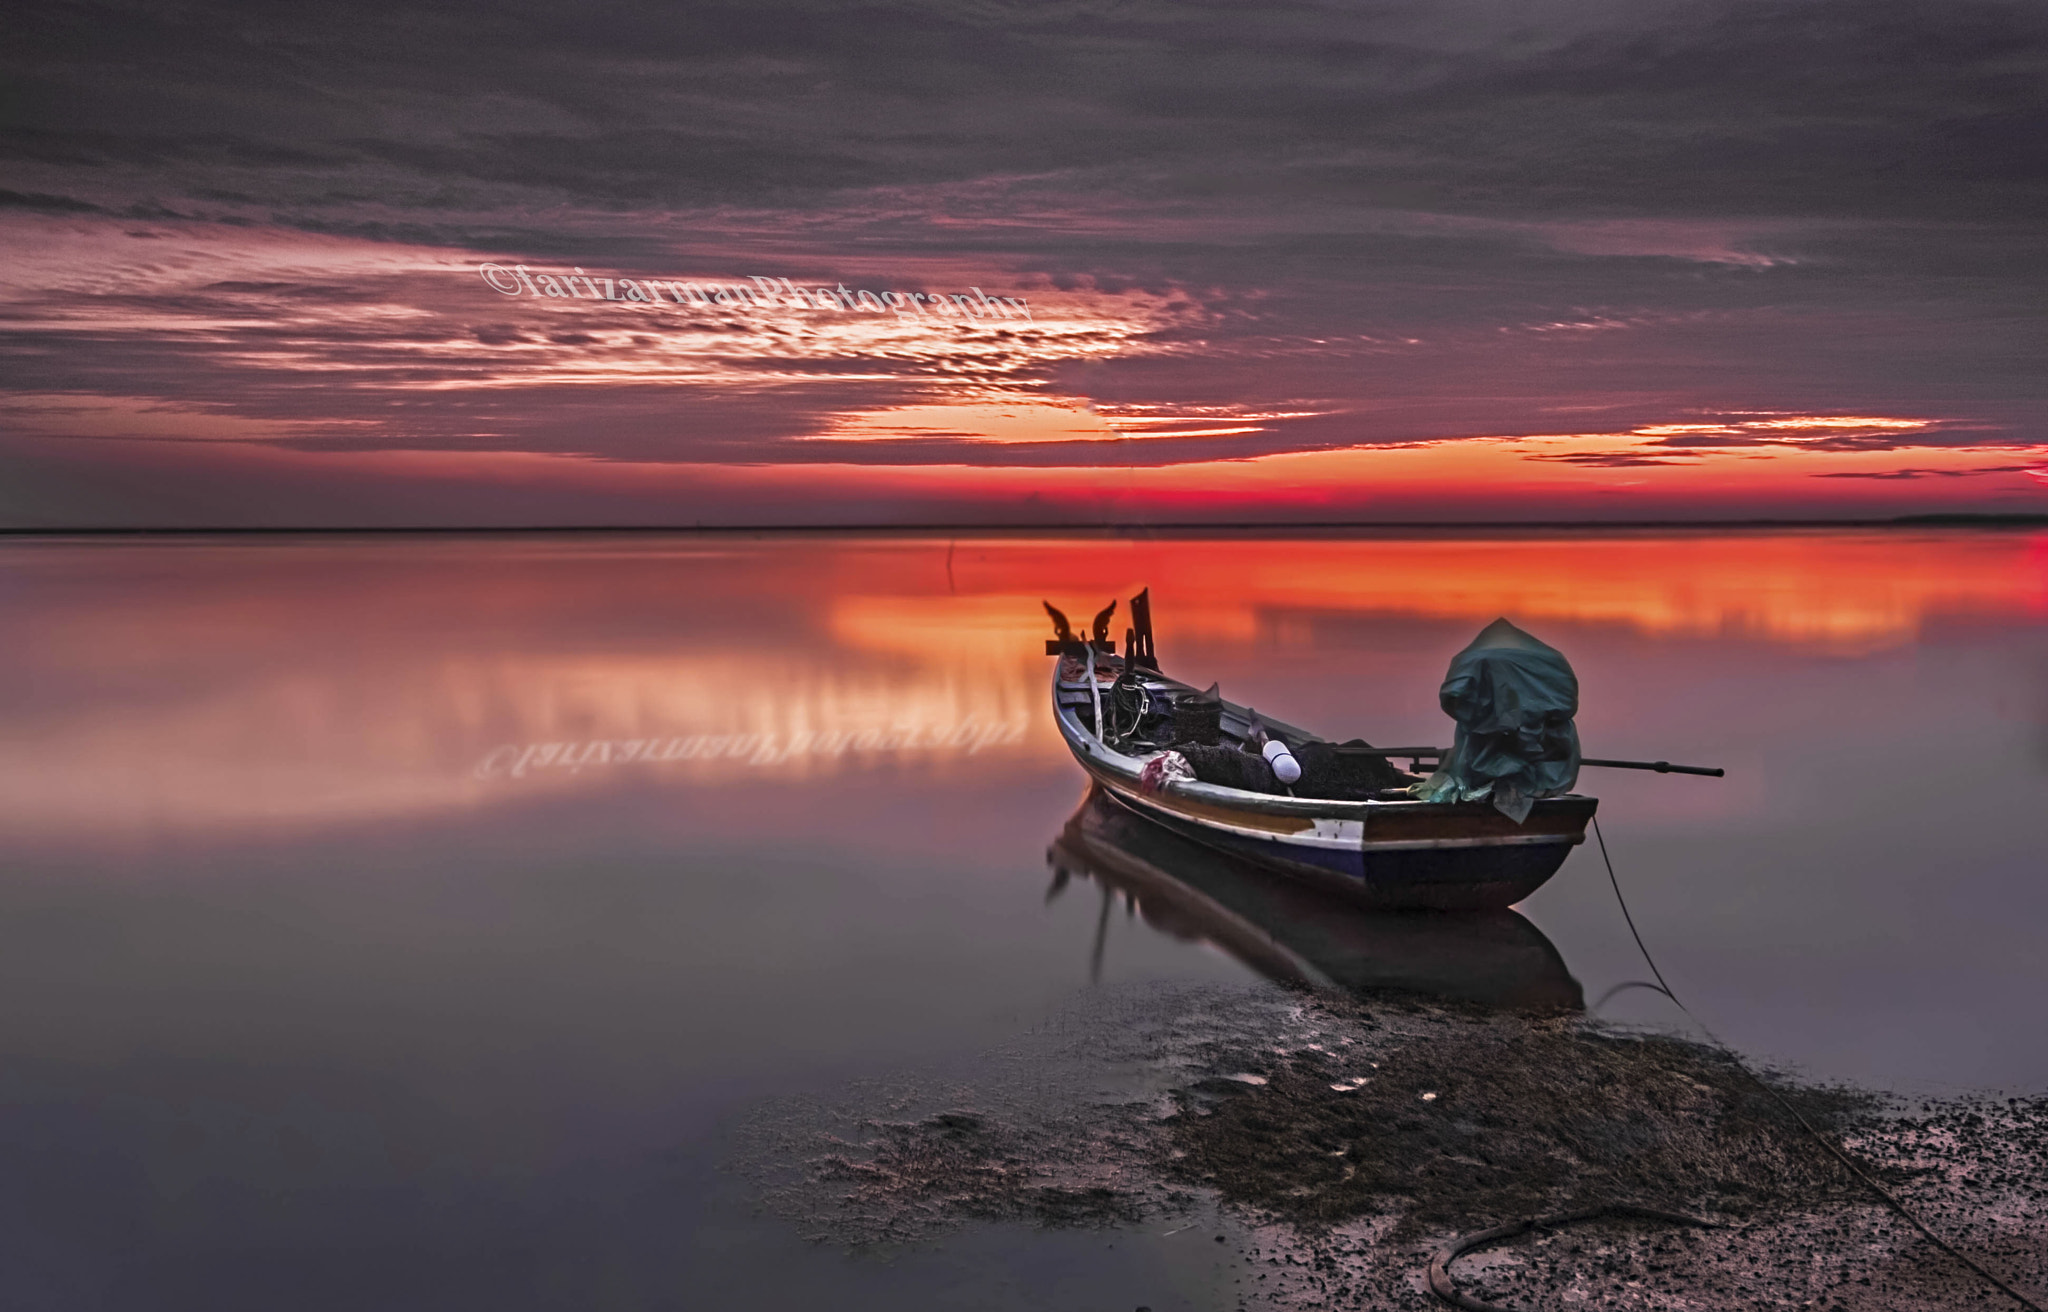 Photograph The Boat by arman fariz on 500px